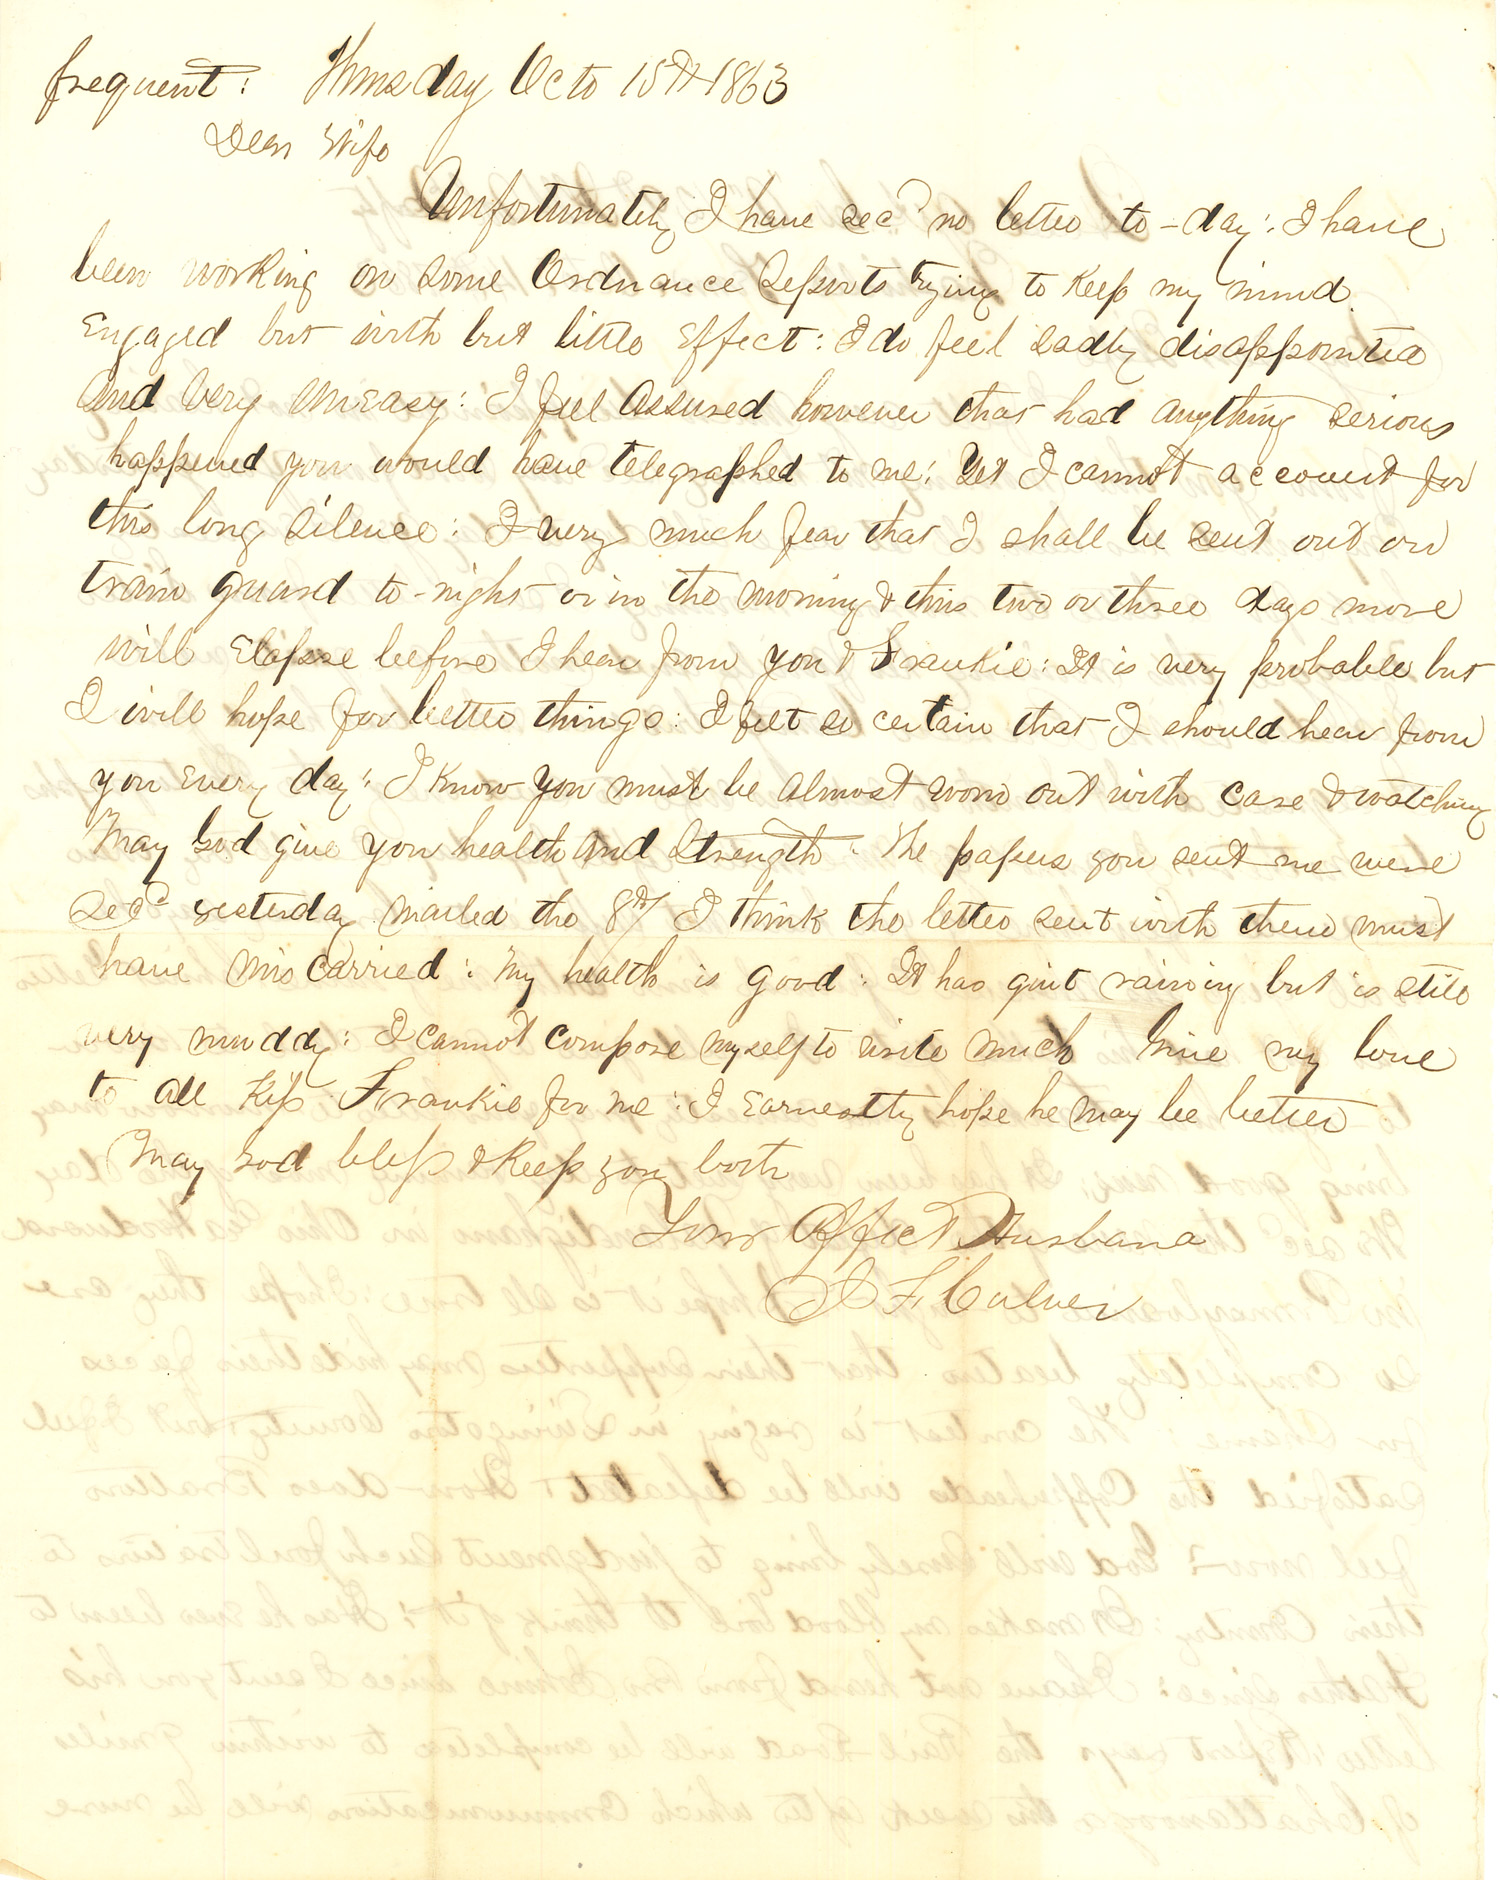 Joseph Culver Letter, October 15, 1863, Page 1